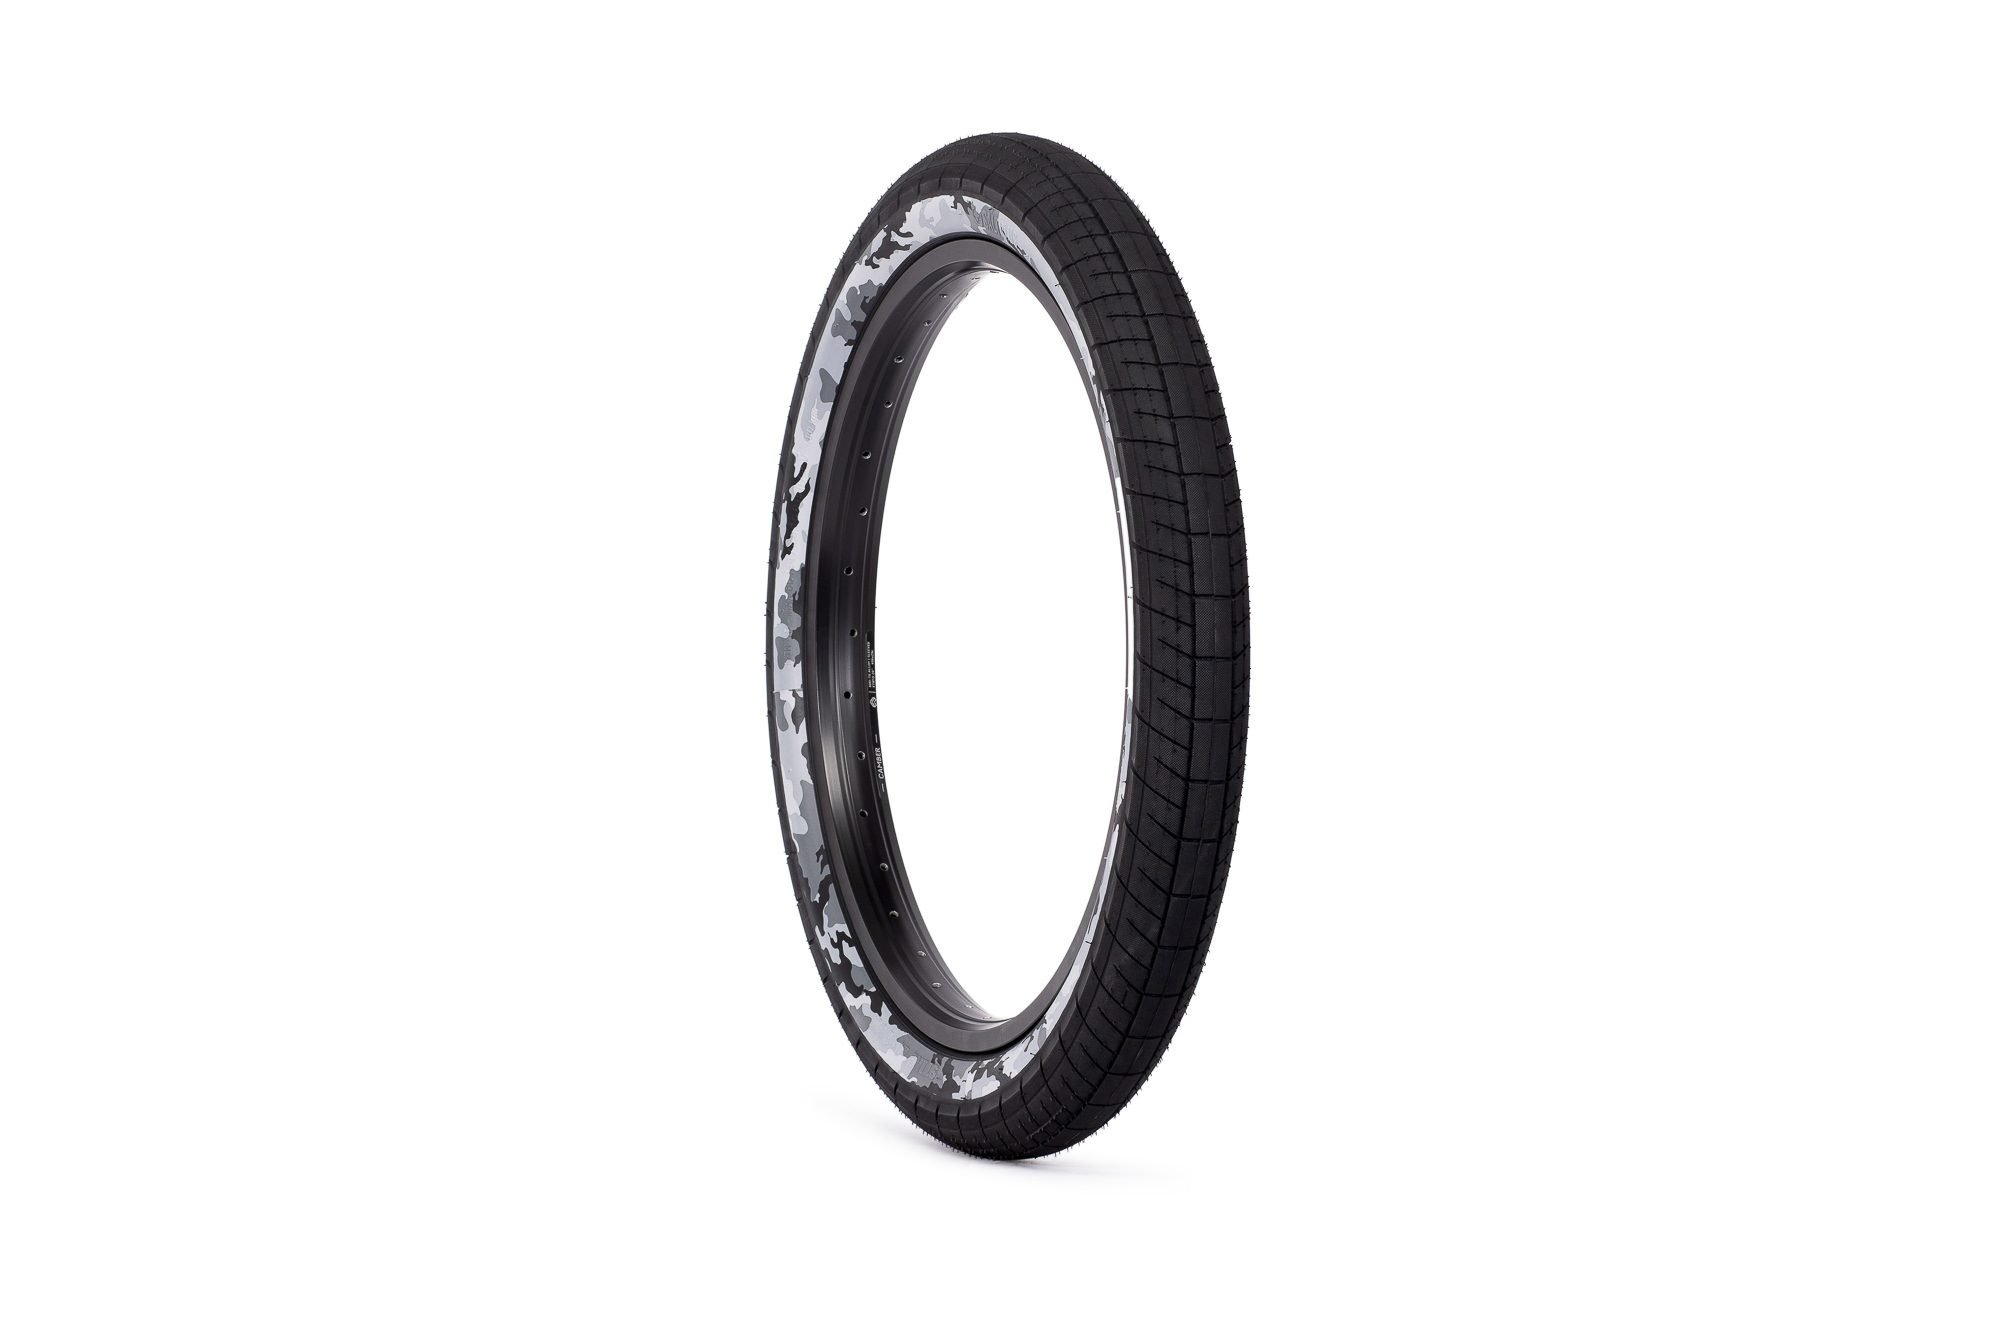 SaltPlus_Sting_tire_black_snow_camo-03